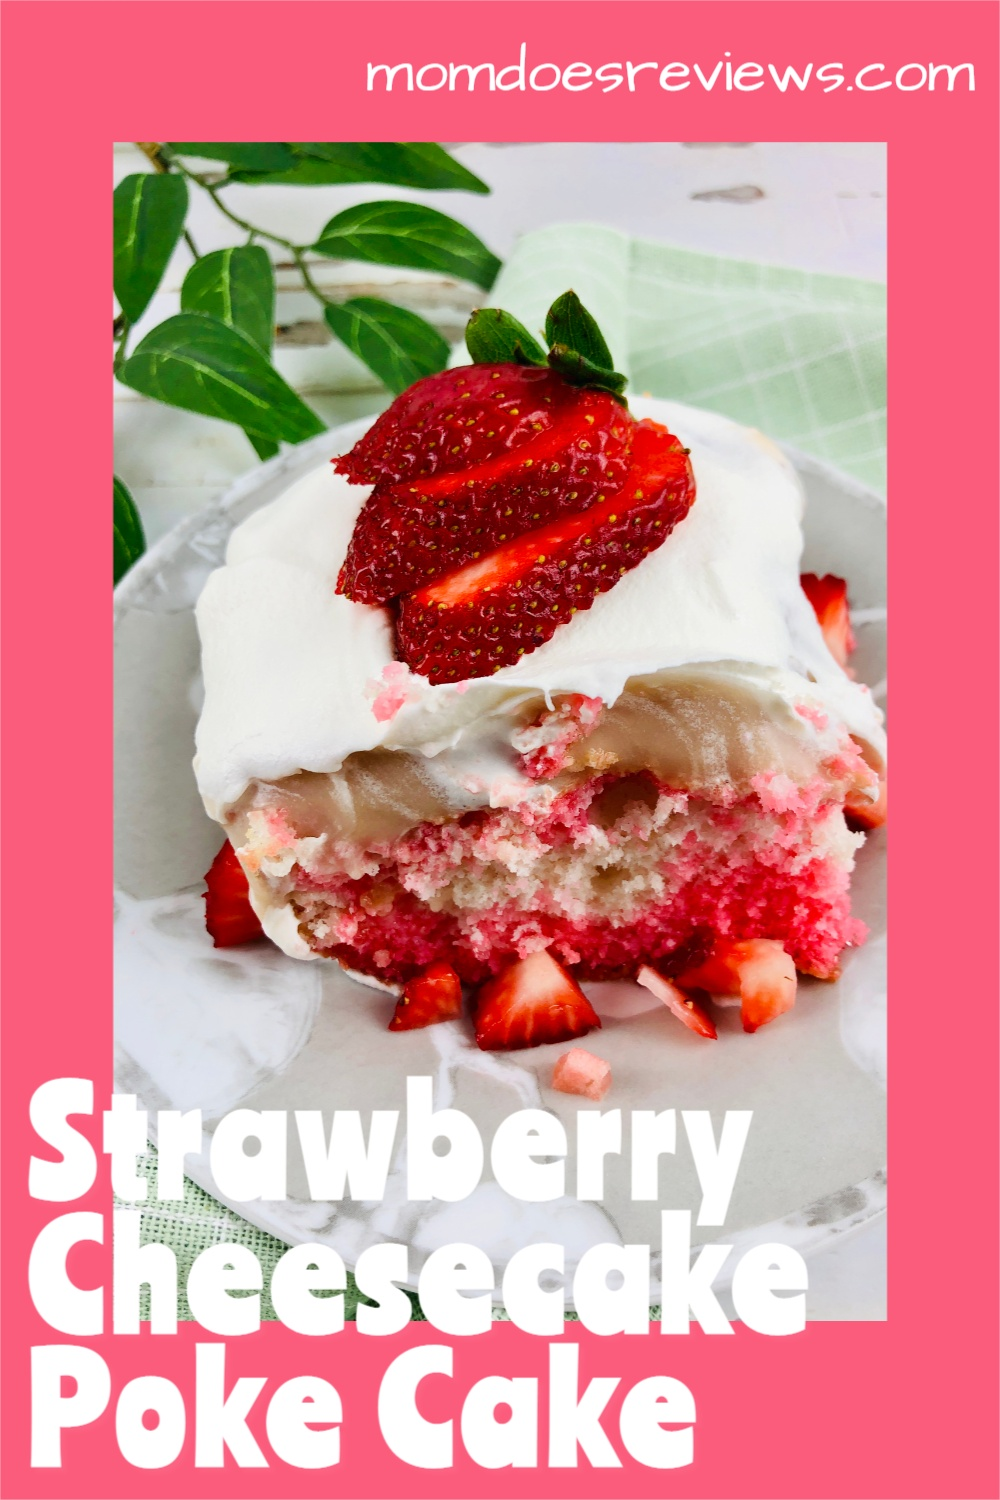 Strawberry Cheesecake Poke Cake #dessert #recipe #pokecake